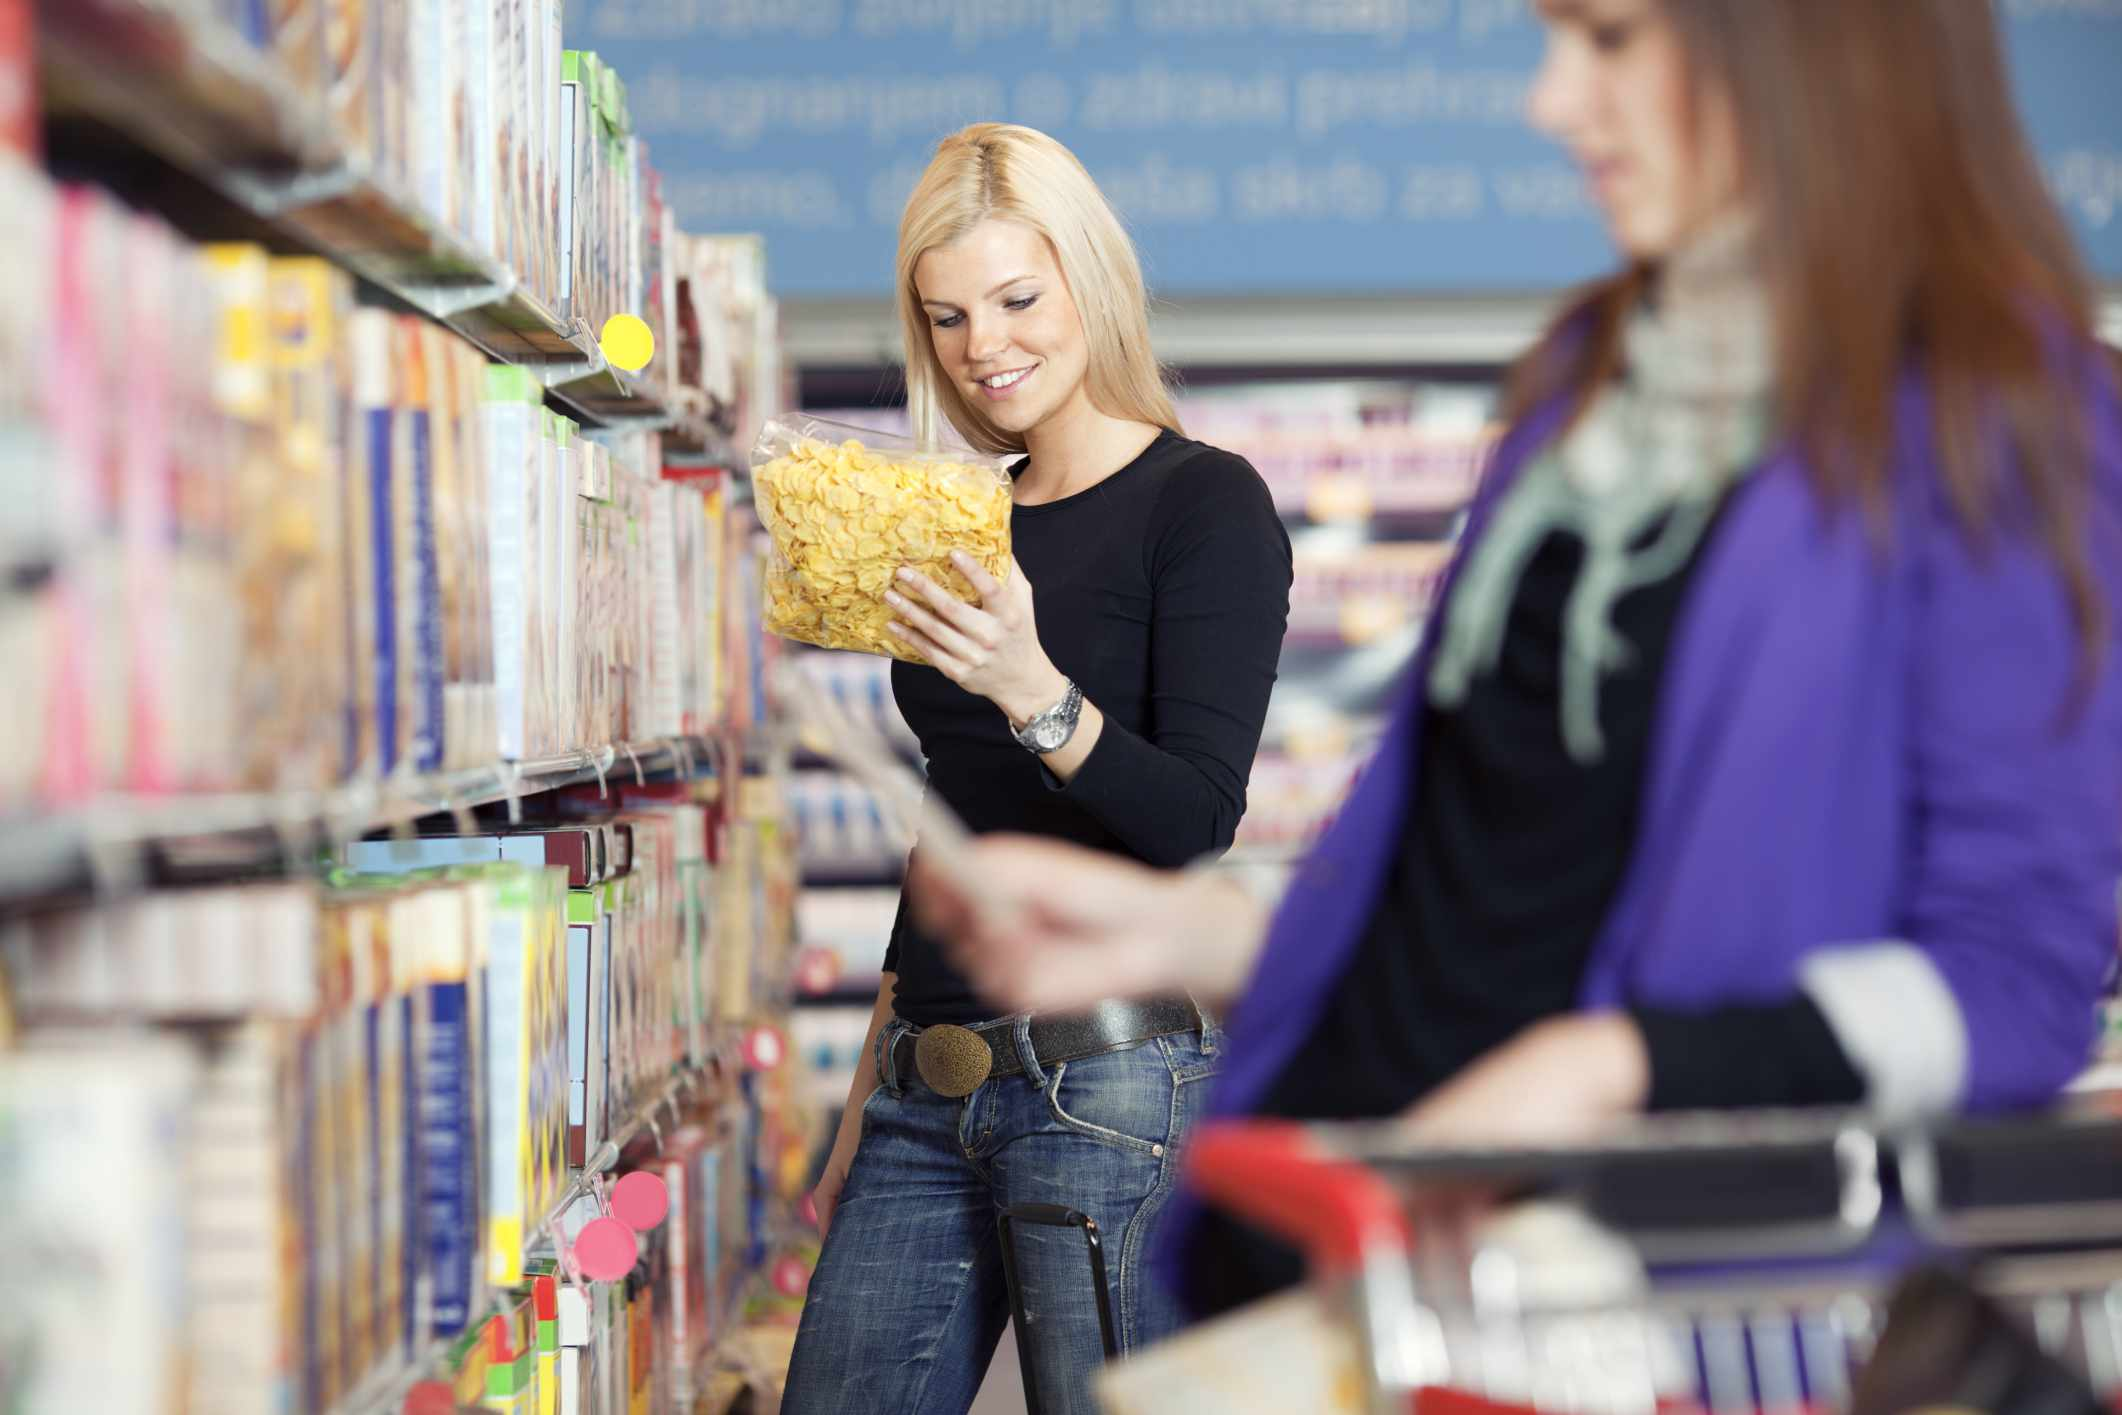 Woman reading package label at grocery store